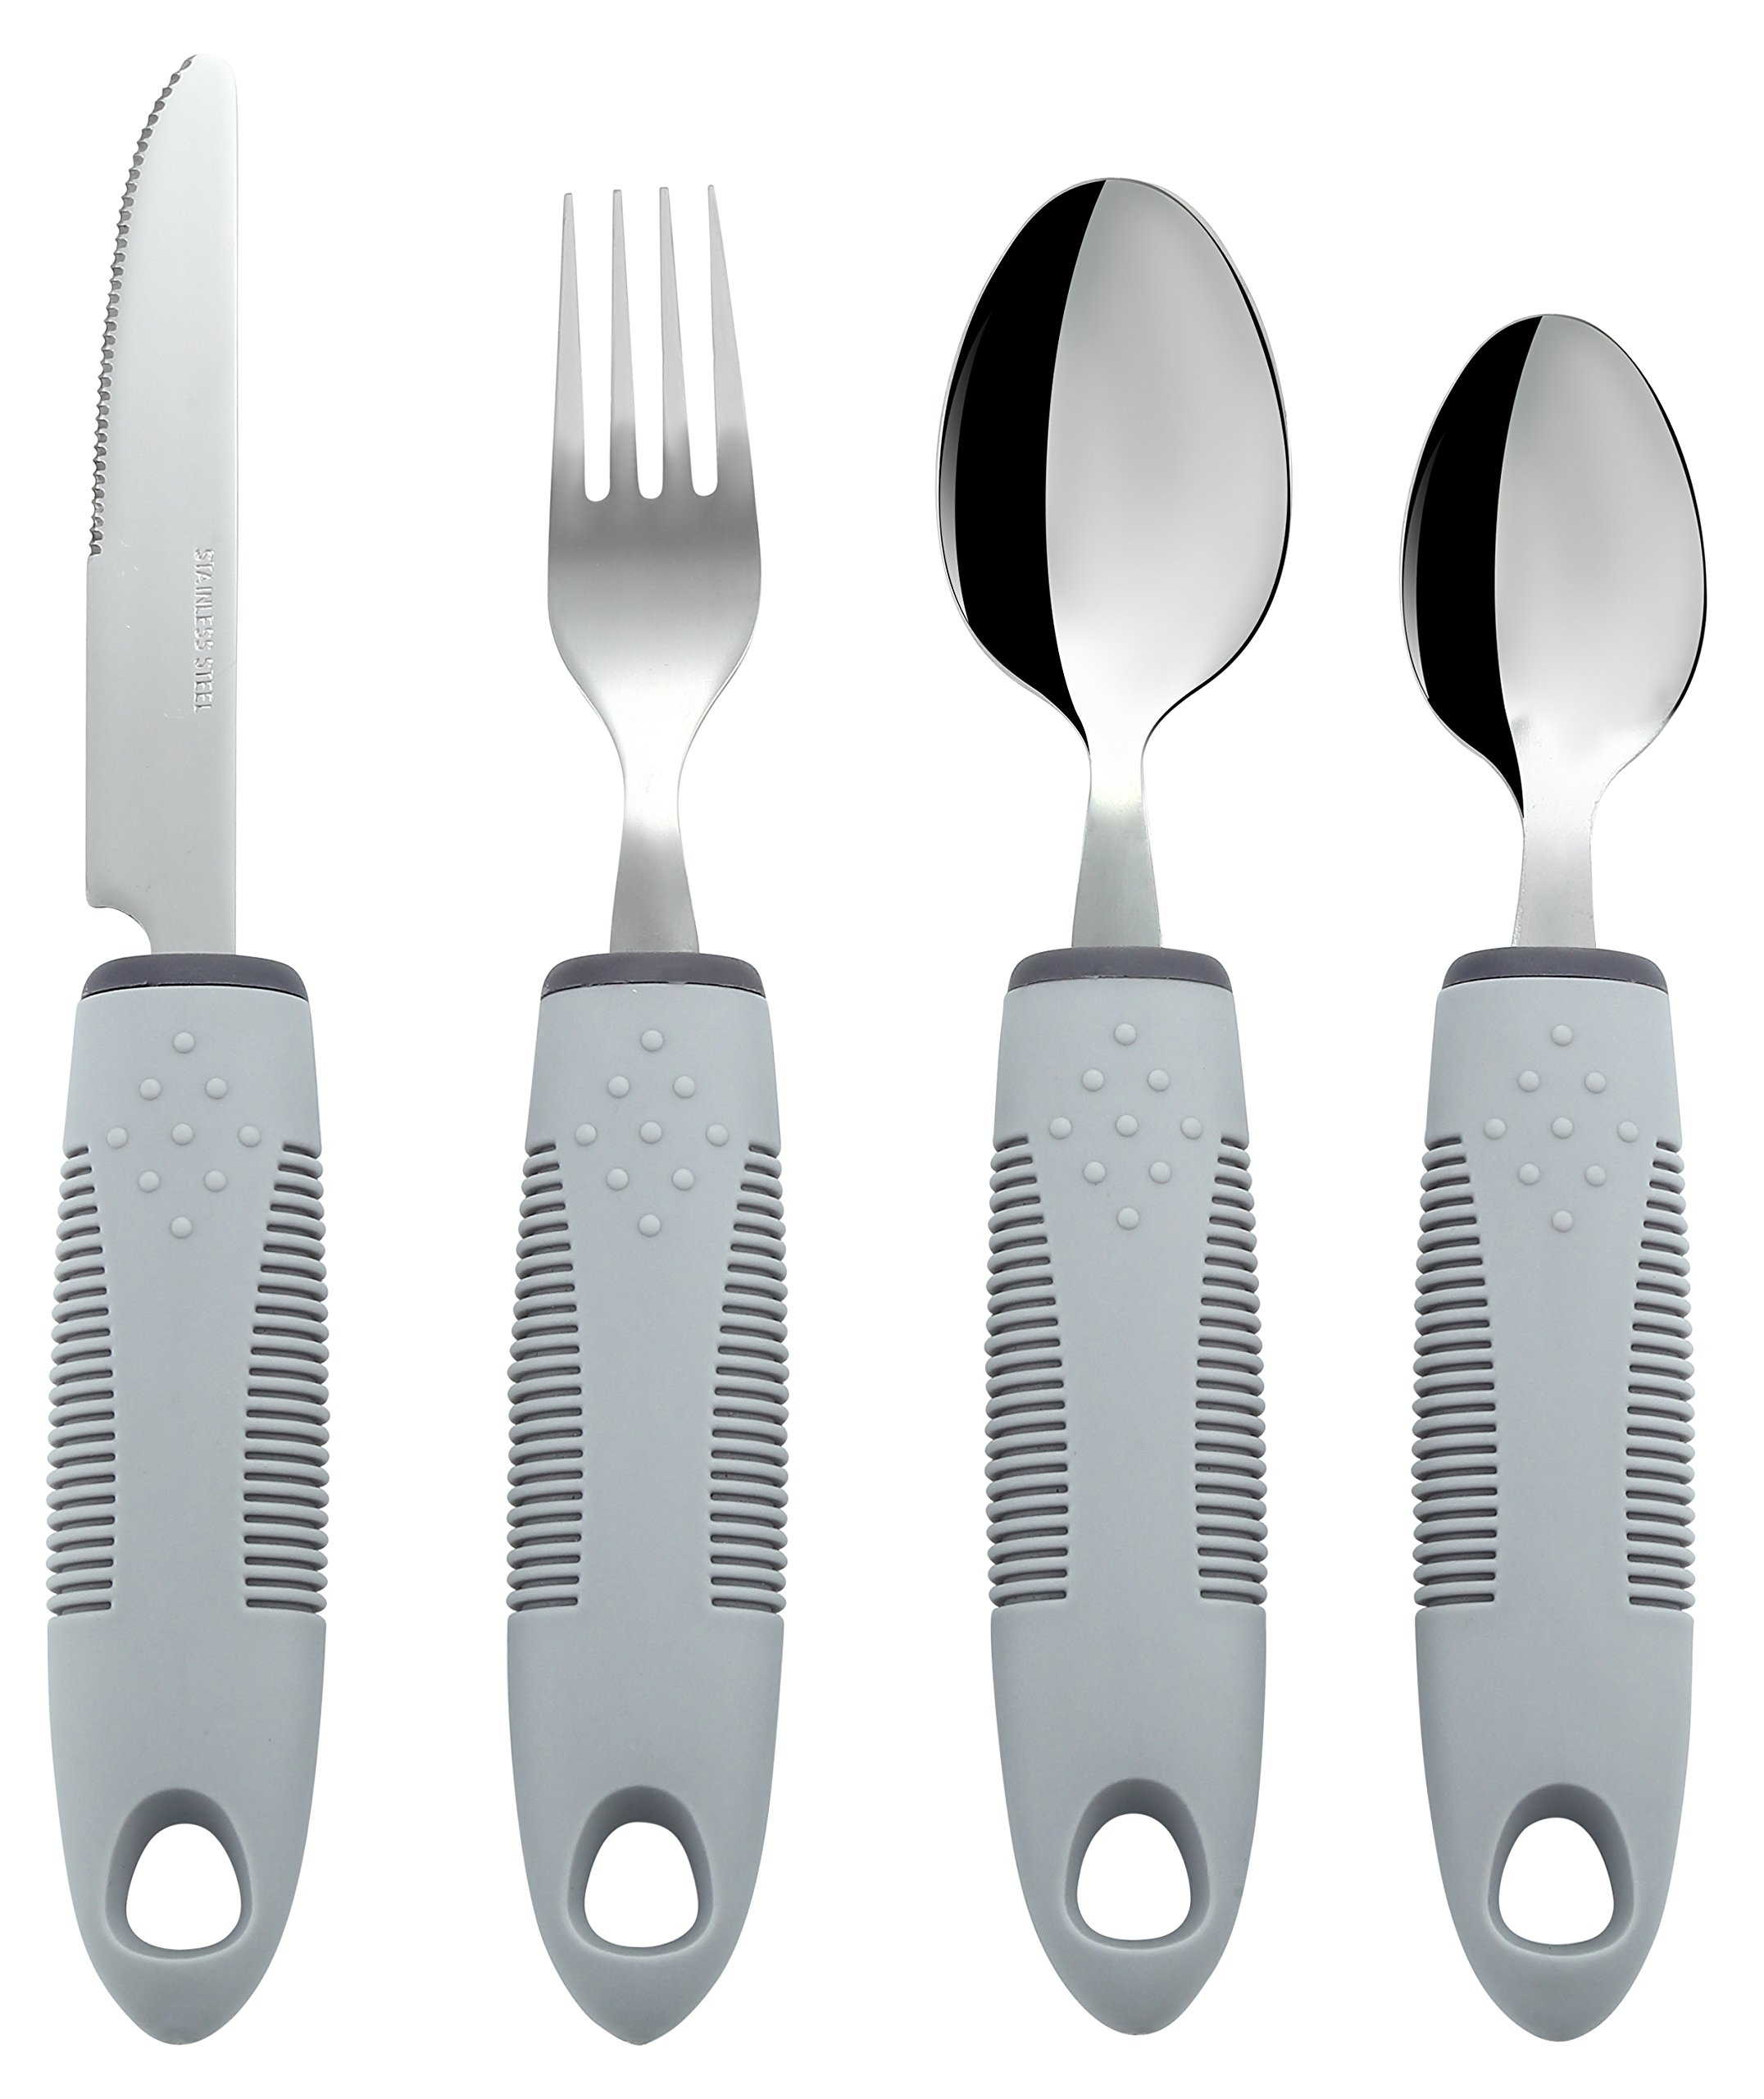 Adaptive Utensils (4-Piece Kitchen Set) Wide, Non-Weighted, Non-Slip Handles for Hand Tremors, Arthritis, Parkinson's Or Elderly use | Stainless Steel Knife, Fork, Spoons - Grey